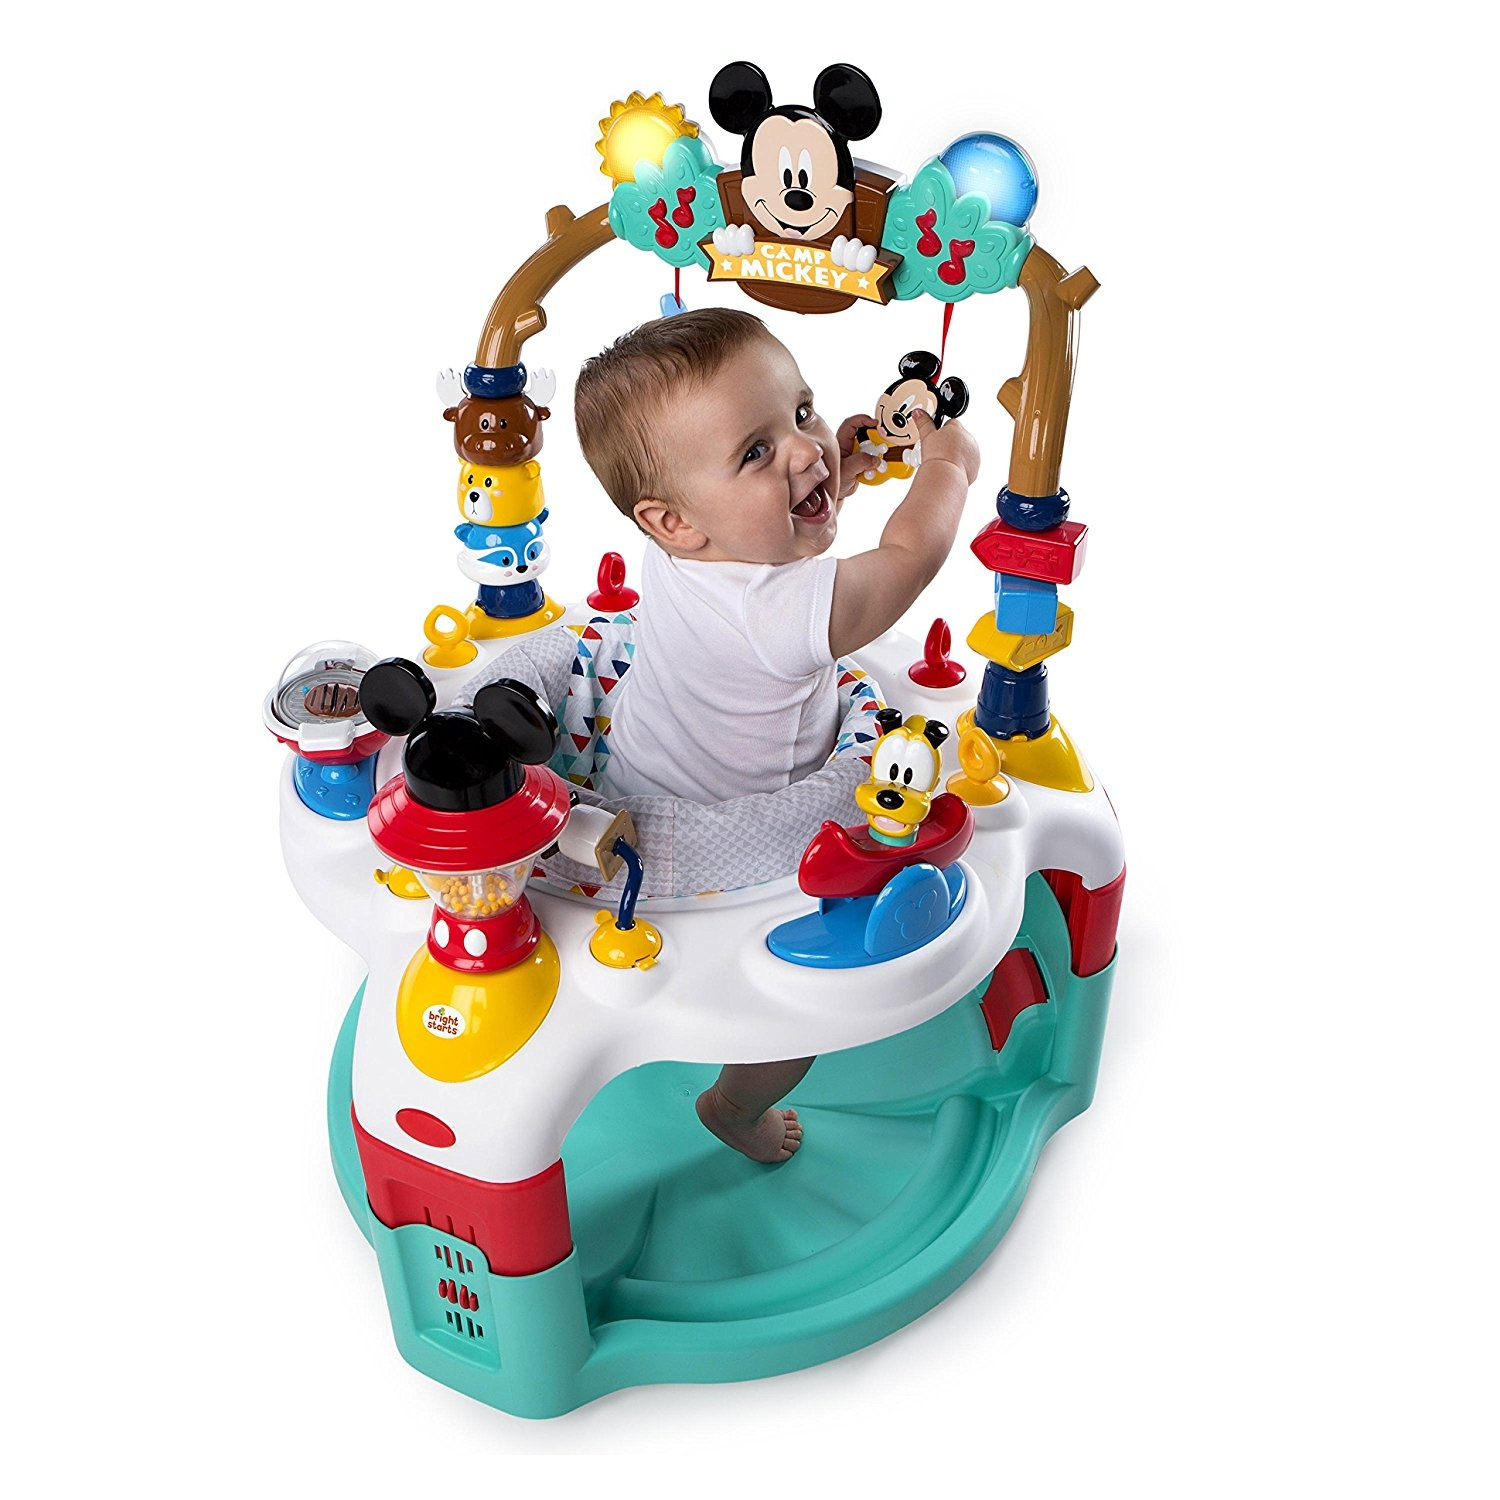 485e983ef Disney Mickey Mouse with Friends Activity Saucer - Best Educational ...